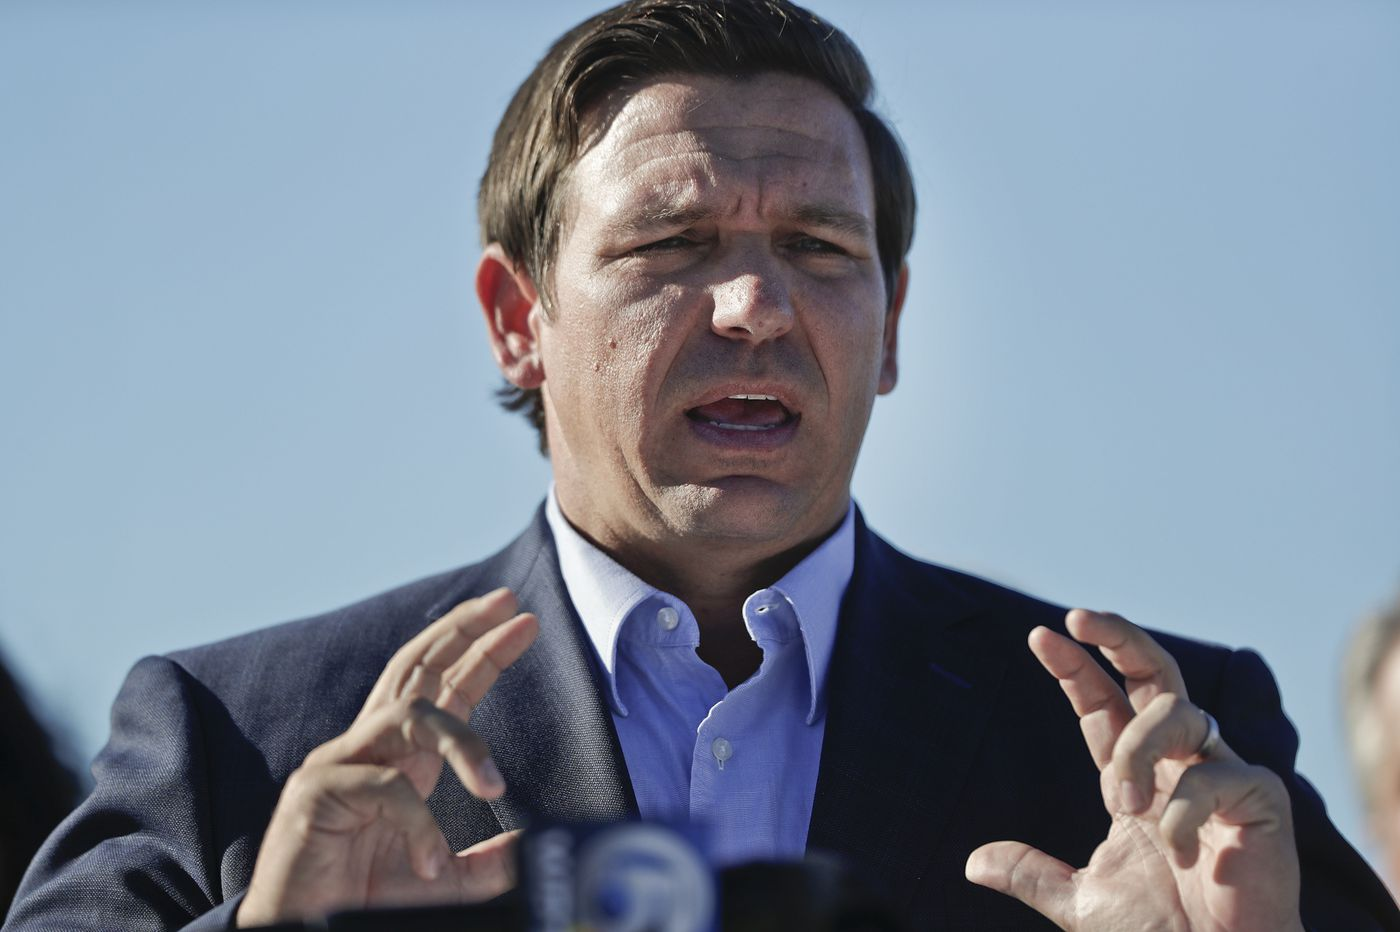 Gov. Ron DeSantis: Russians accessed 2 Florida voting databases